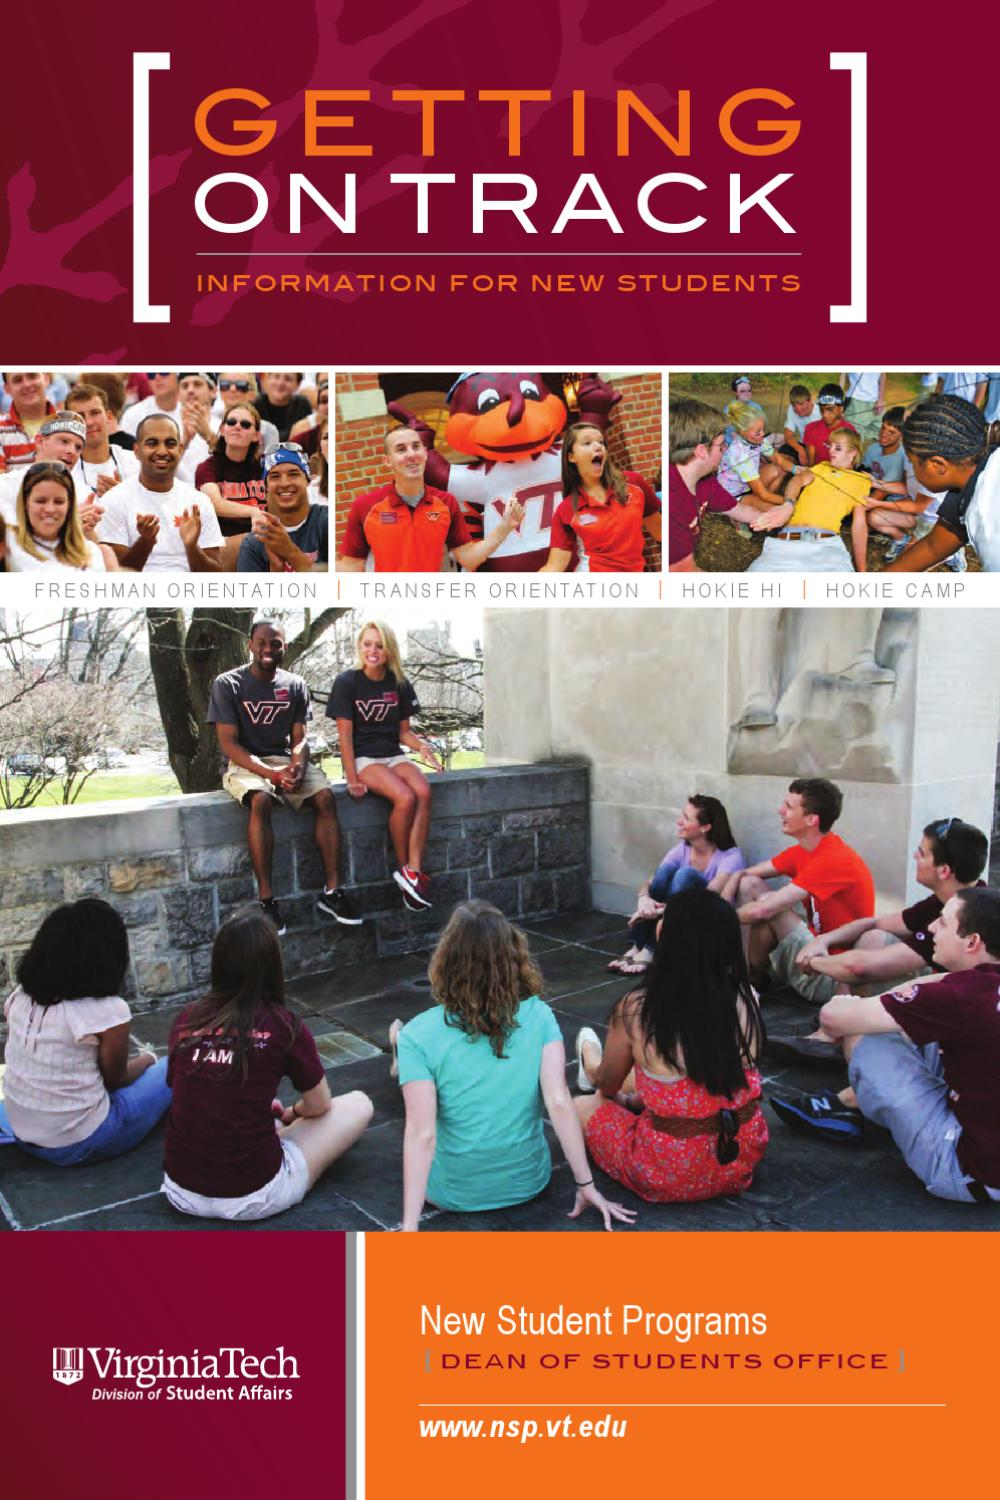 Getting On Track 2012 By Virginia Tech New Student Programs Issuu